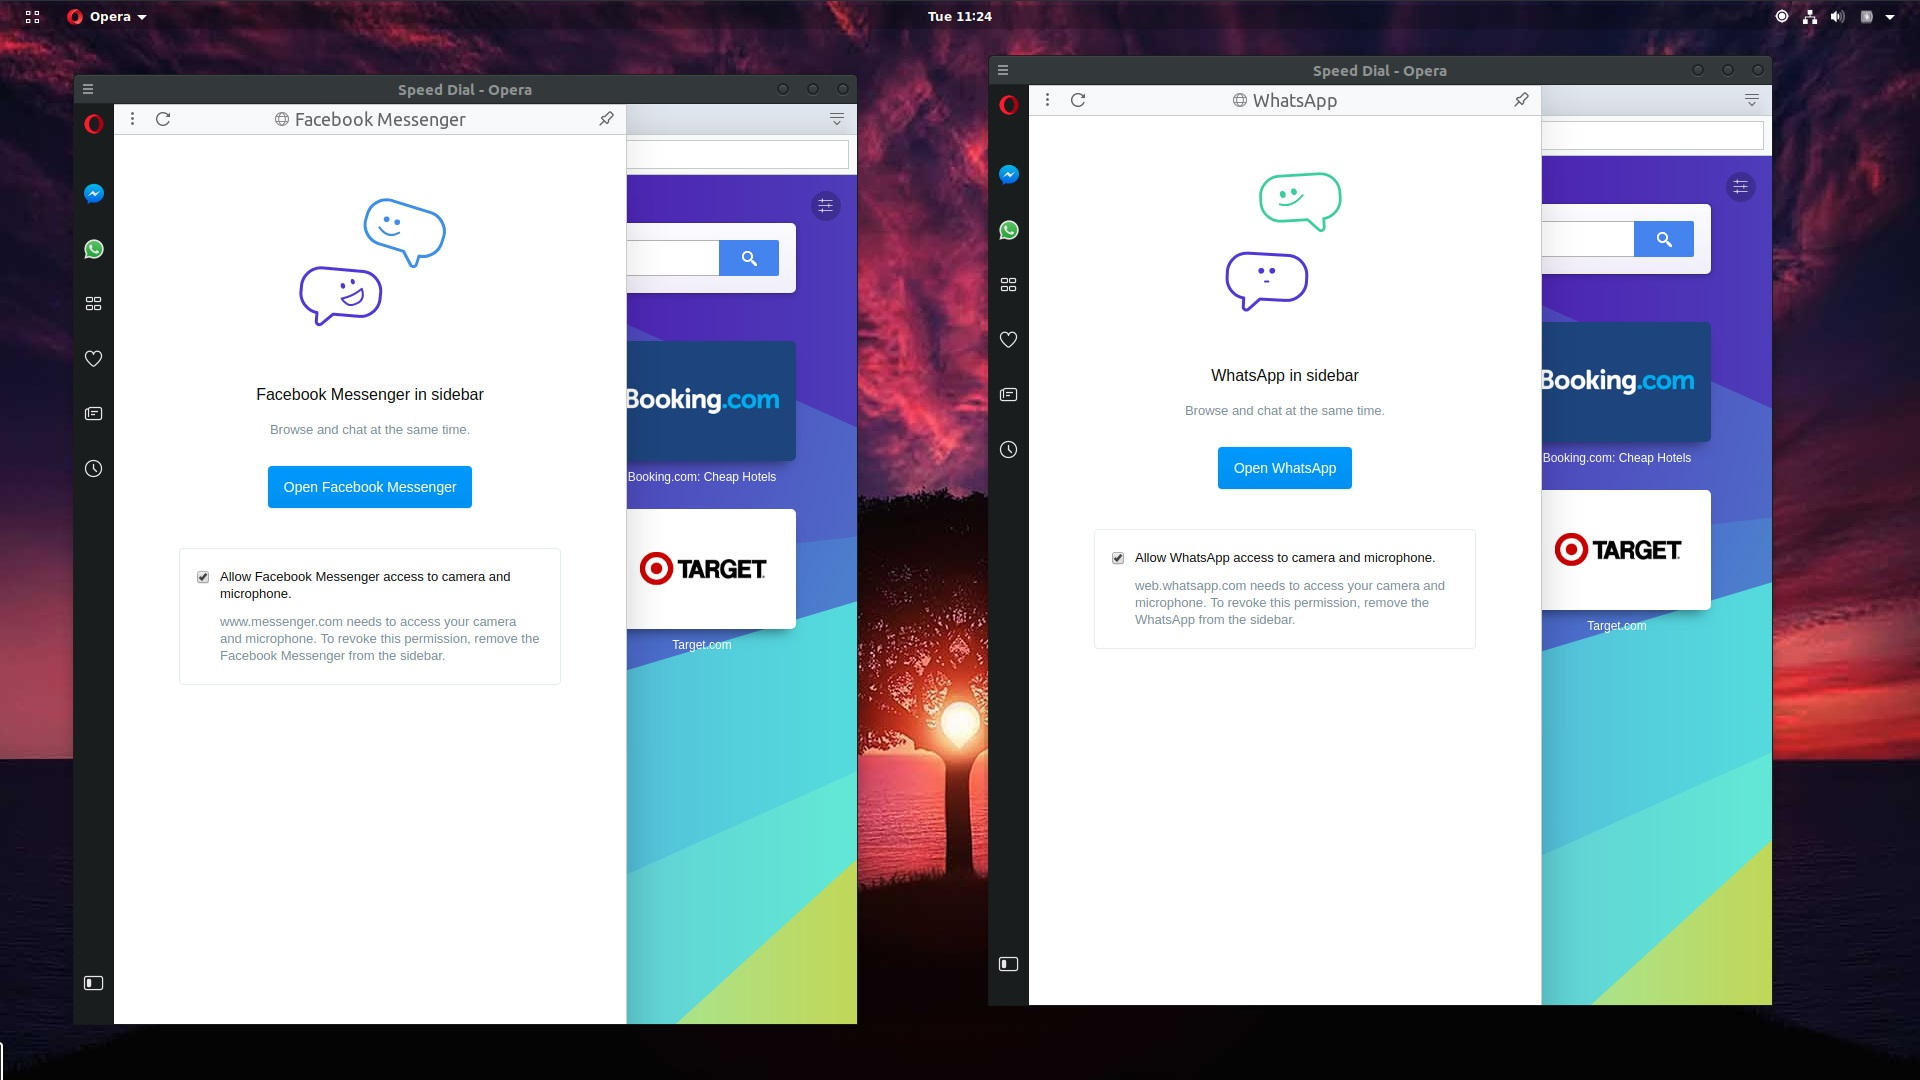 Opera Web Browser Now Has Built-in WhatsApp and FB Messenger